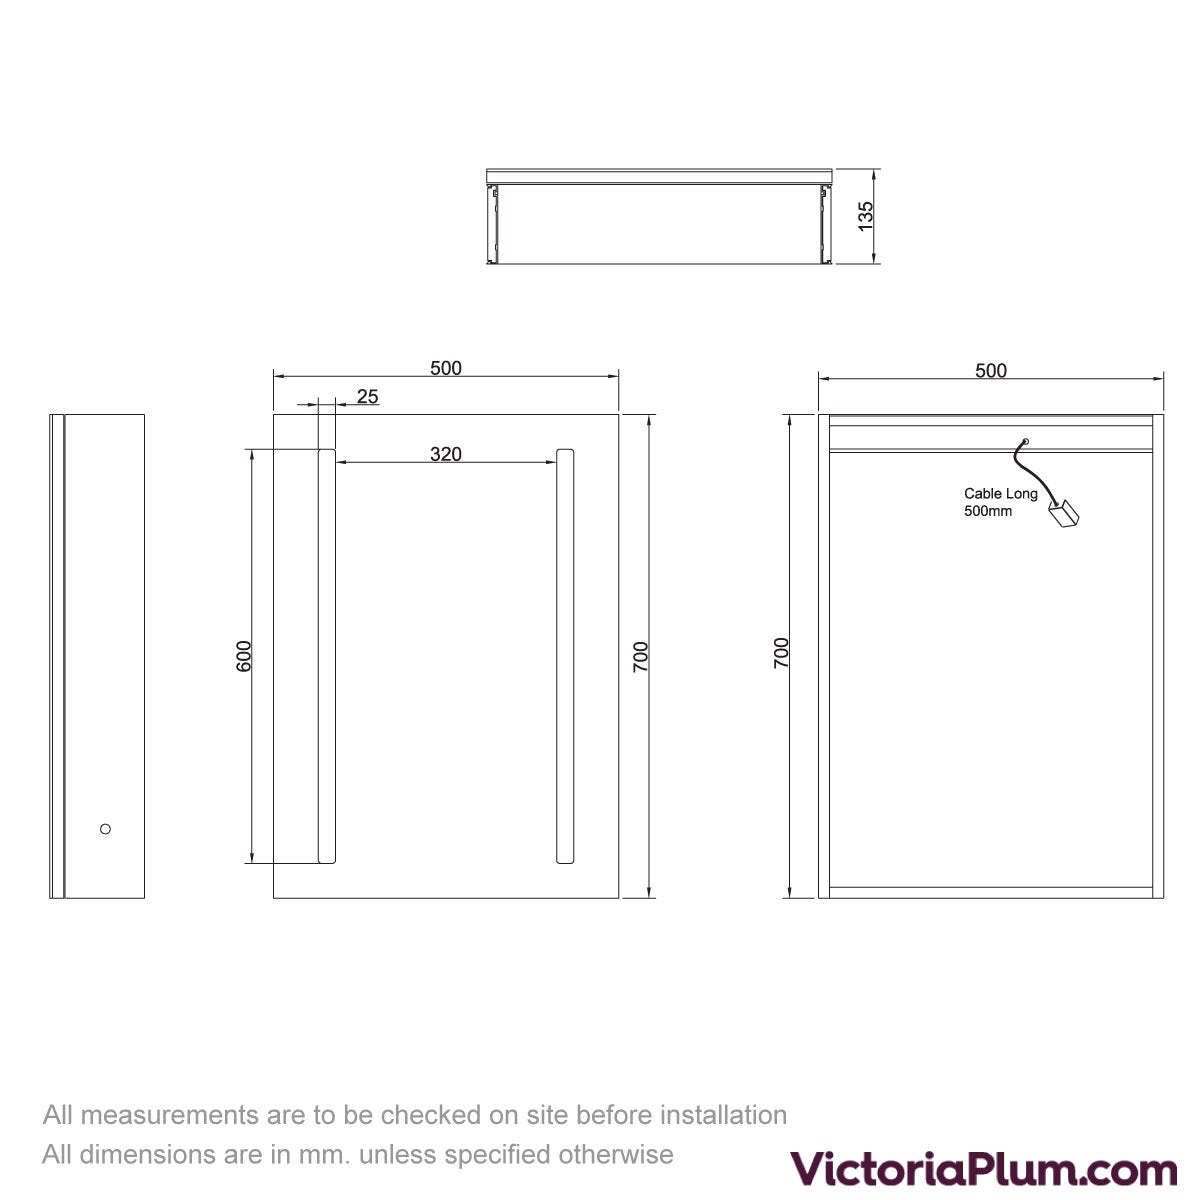 Dimensions for Mode Mellor LED dual lit mirror cabinet 500x700